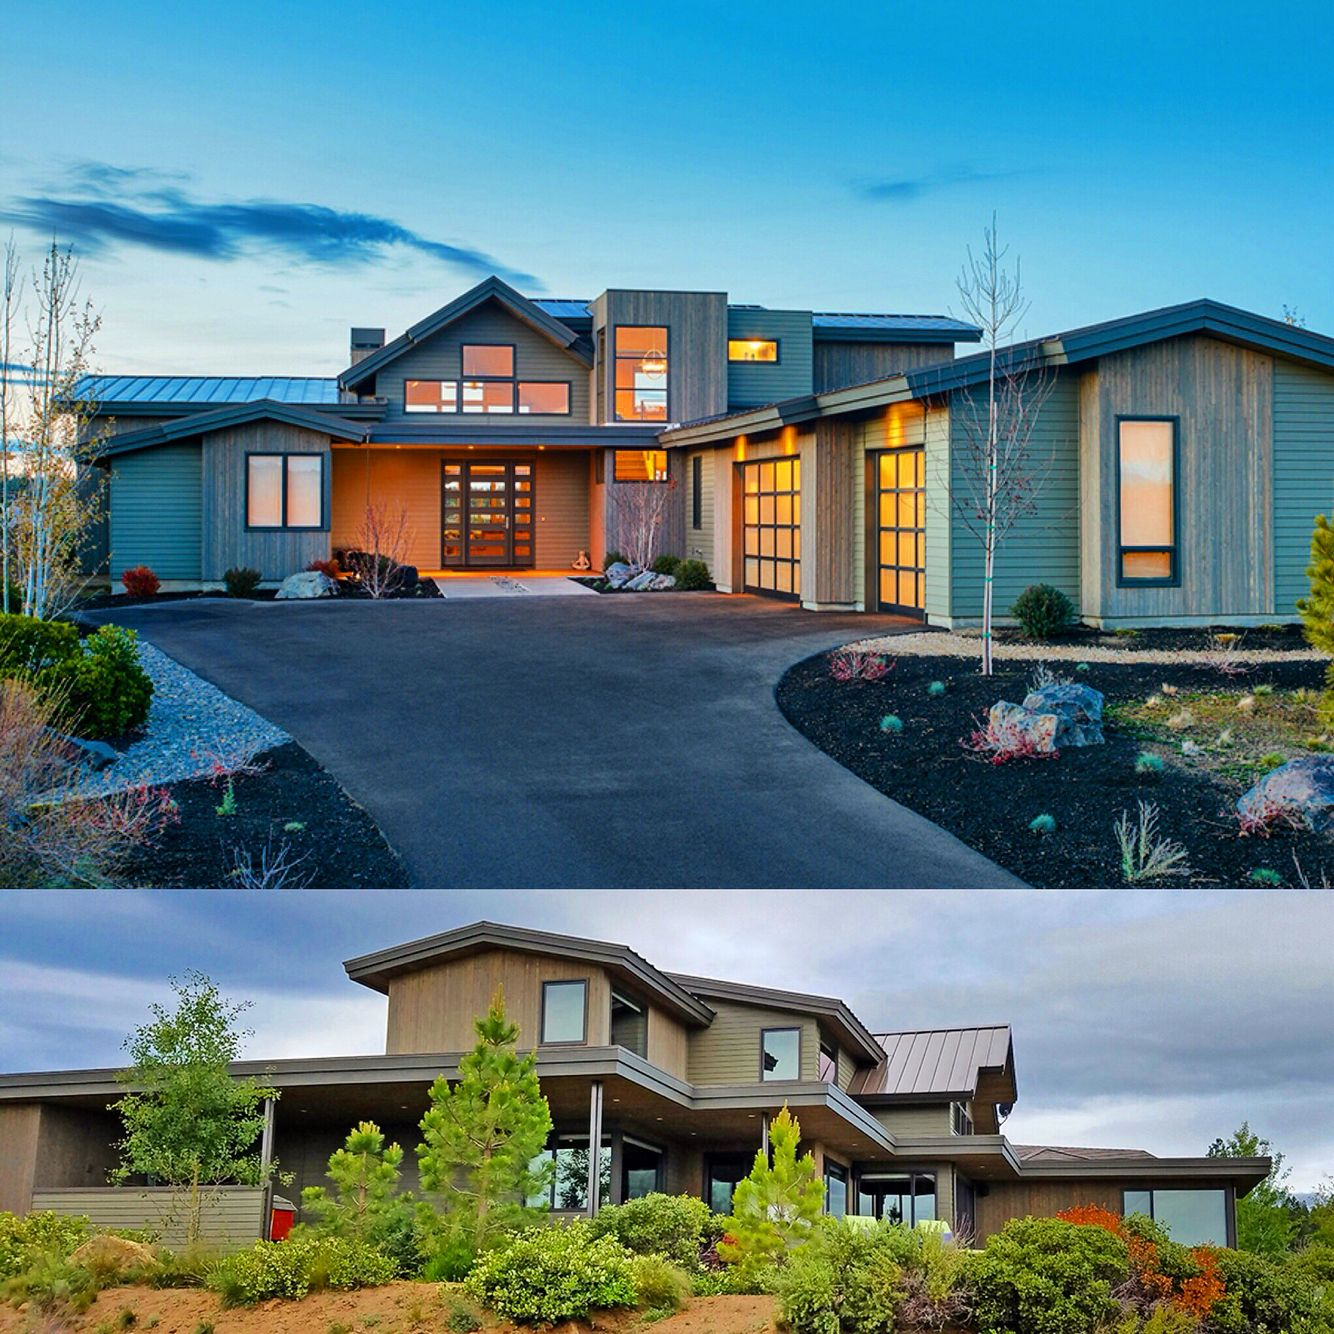 Modern Homes Front And Back: Front And Back Corner Views Of Architectural Designs